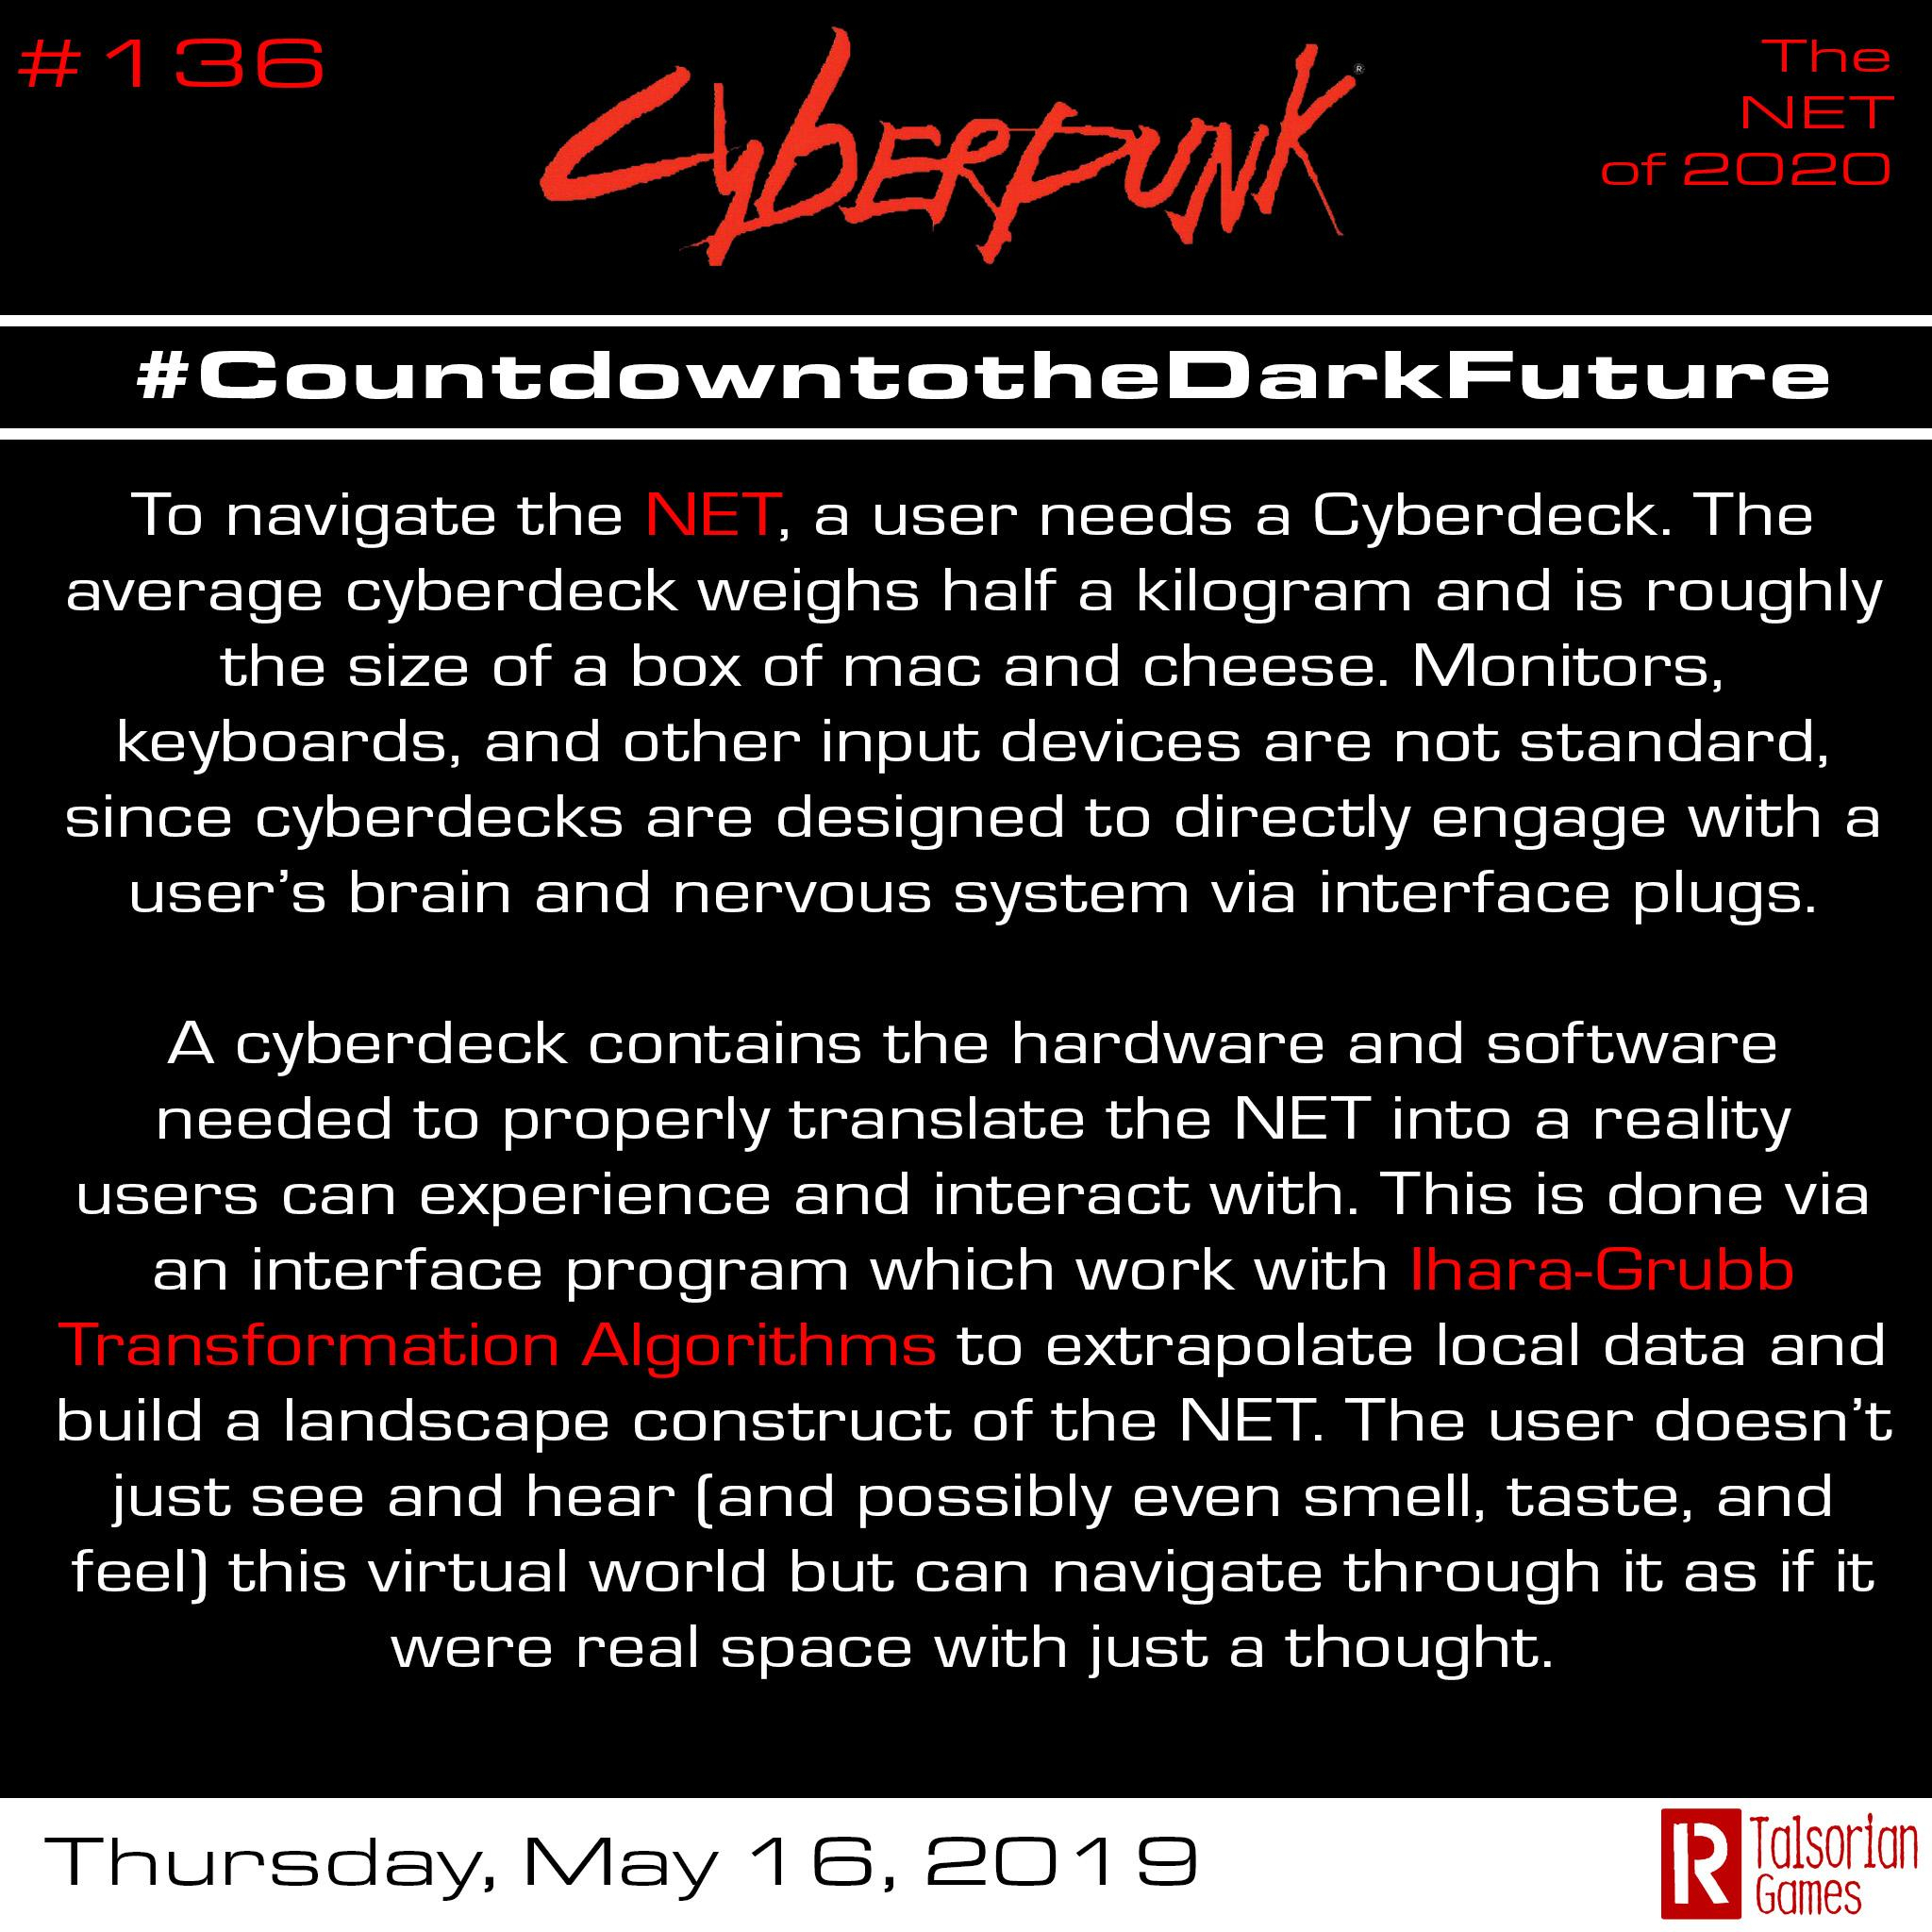 Countdown To The Dark Future (365 Days Of Cyberpunk Facts) Day 136 for Special Days Of The Year 2020